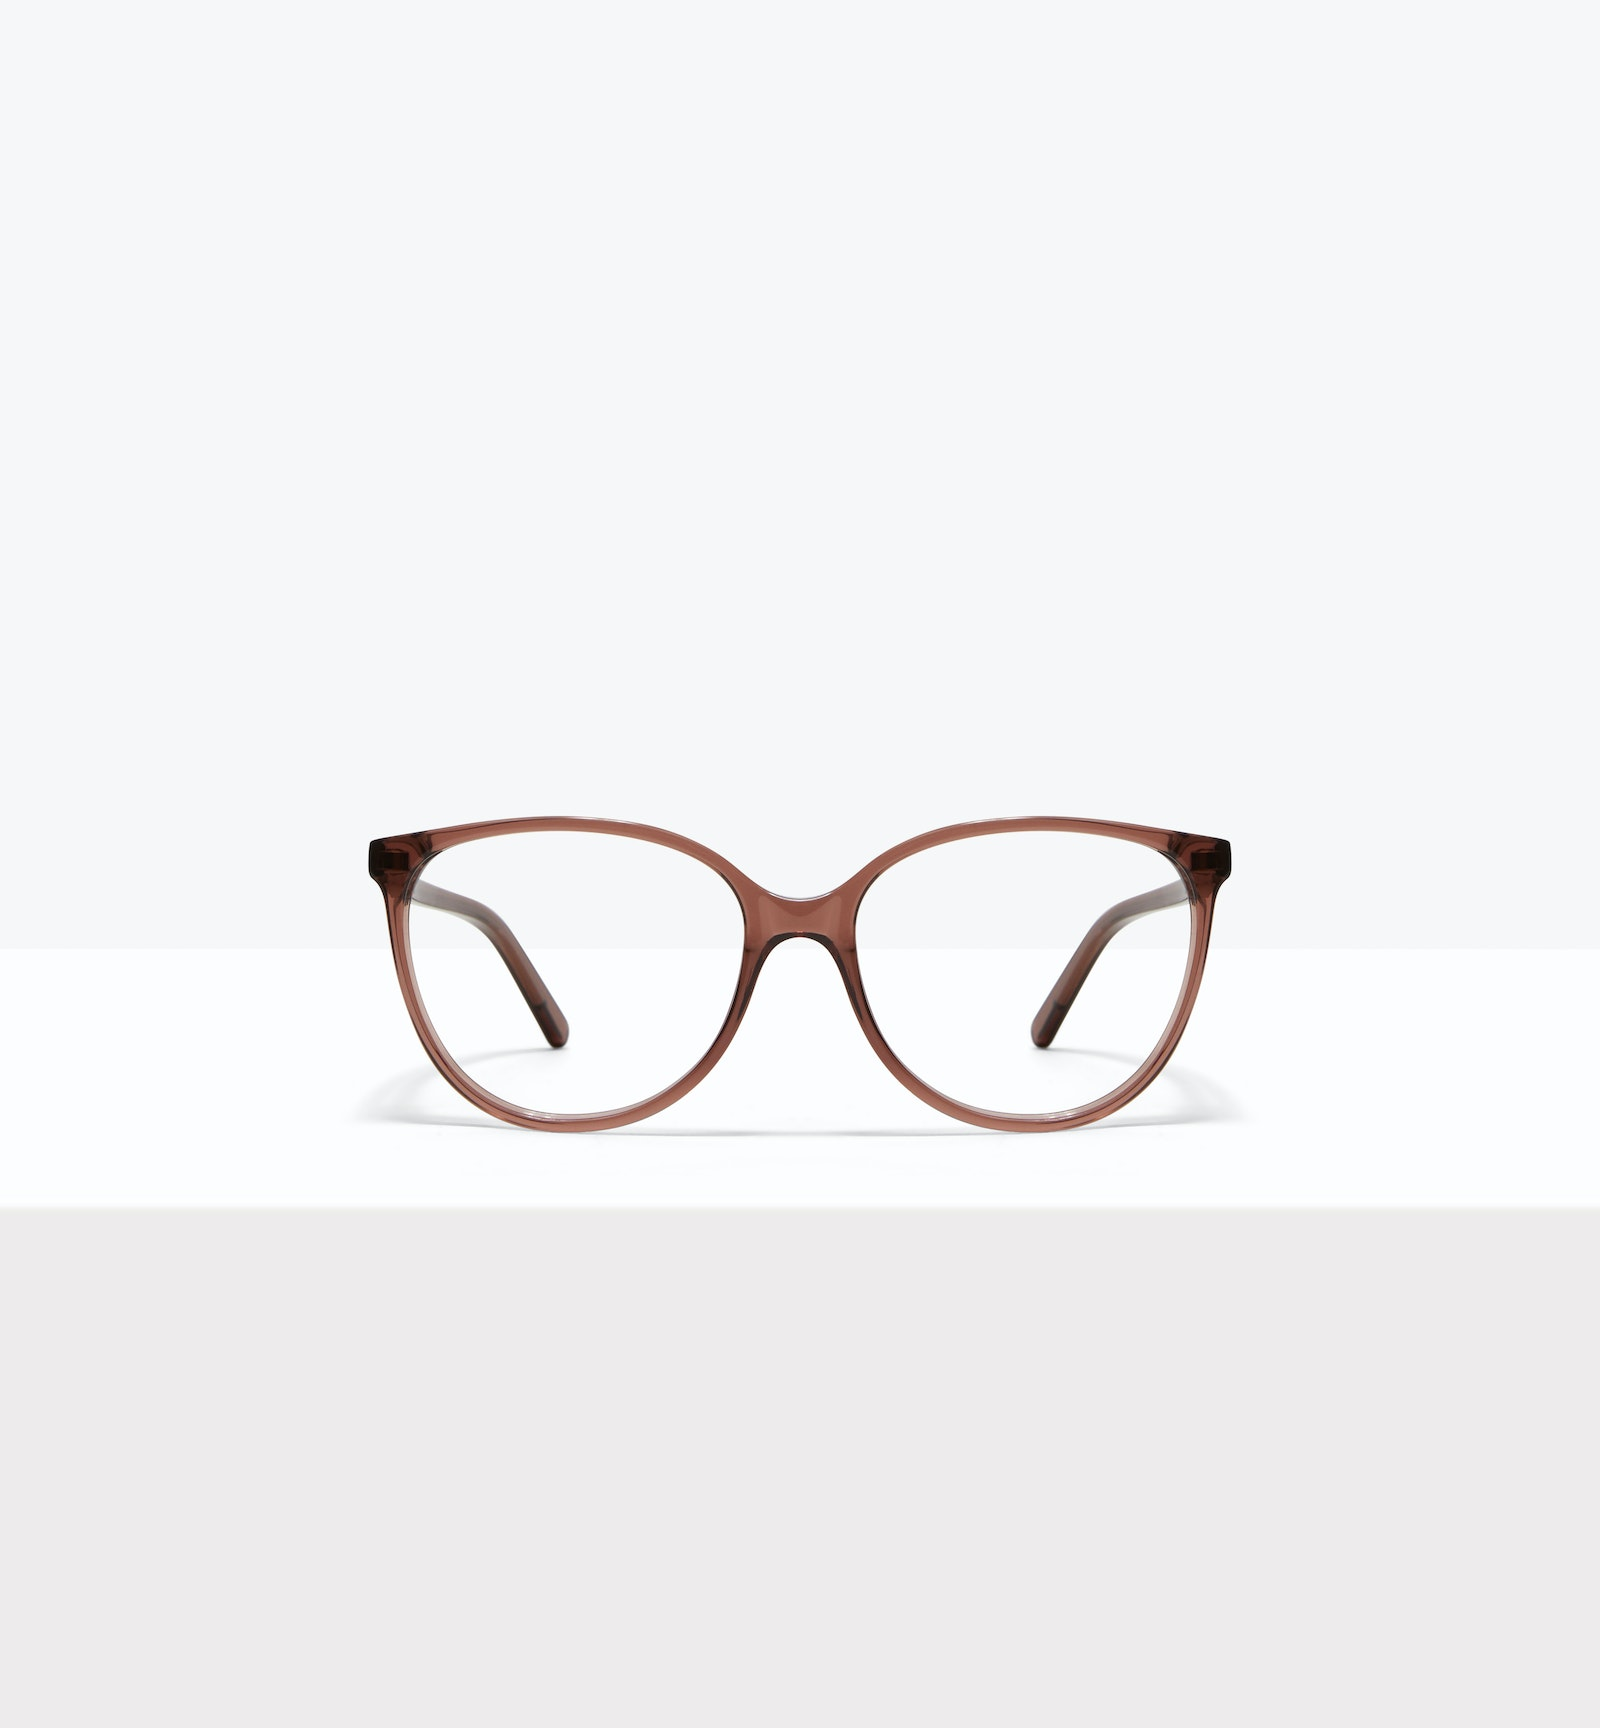 Affordable Fashion Glasses Cat Eye Eyeglasses Women Imagine Terra